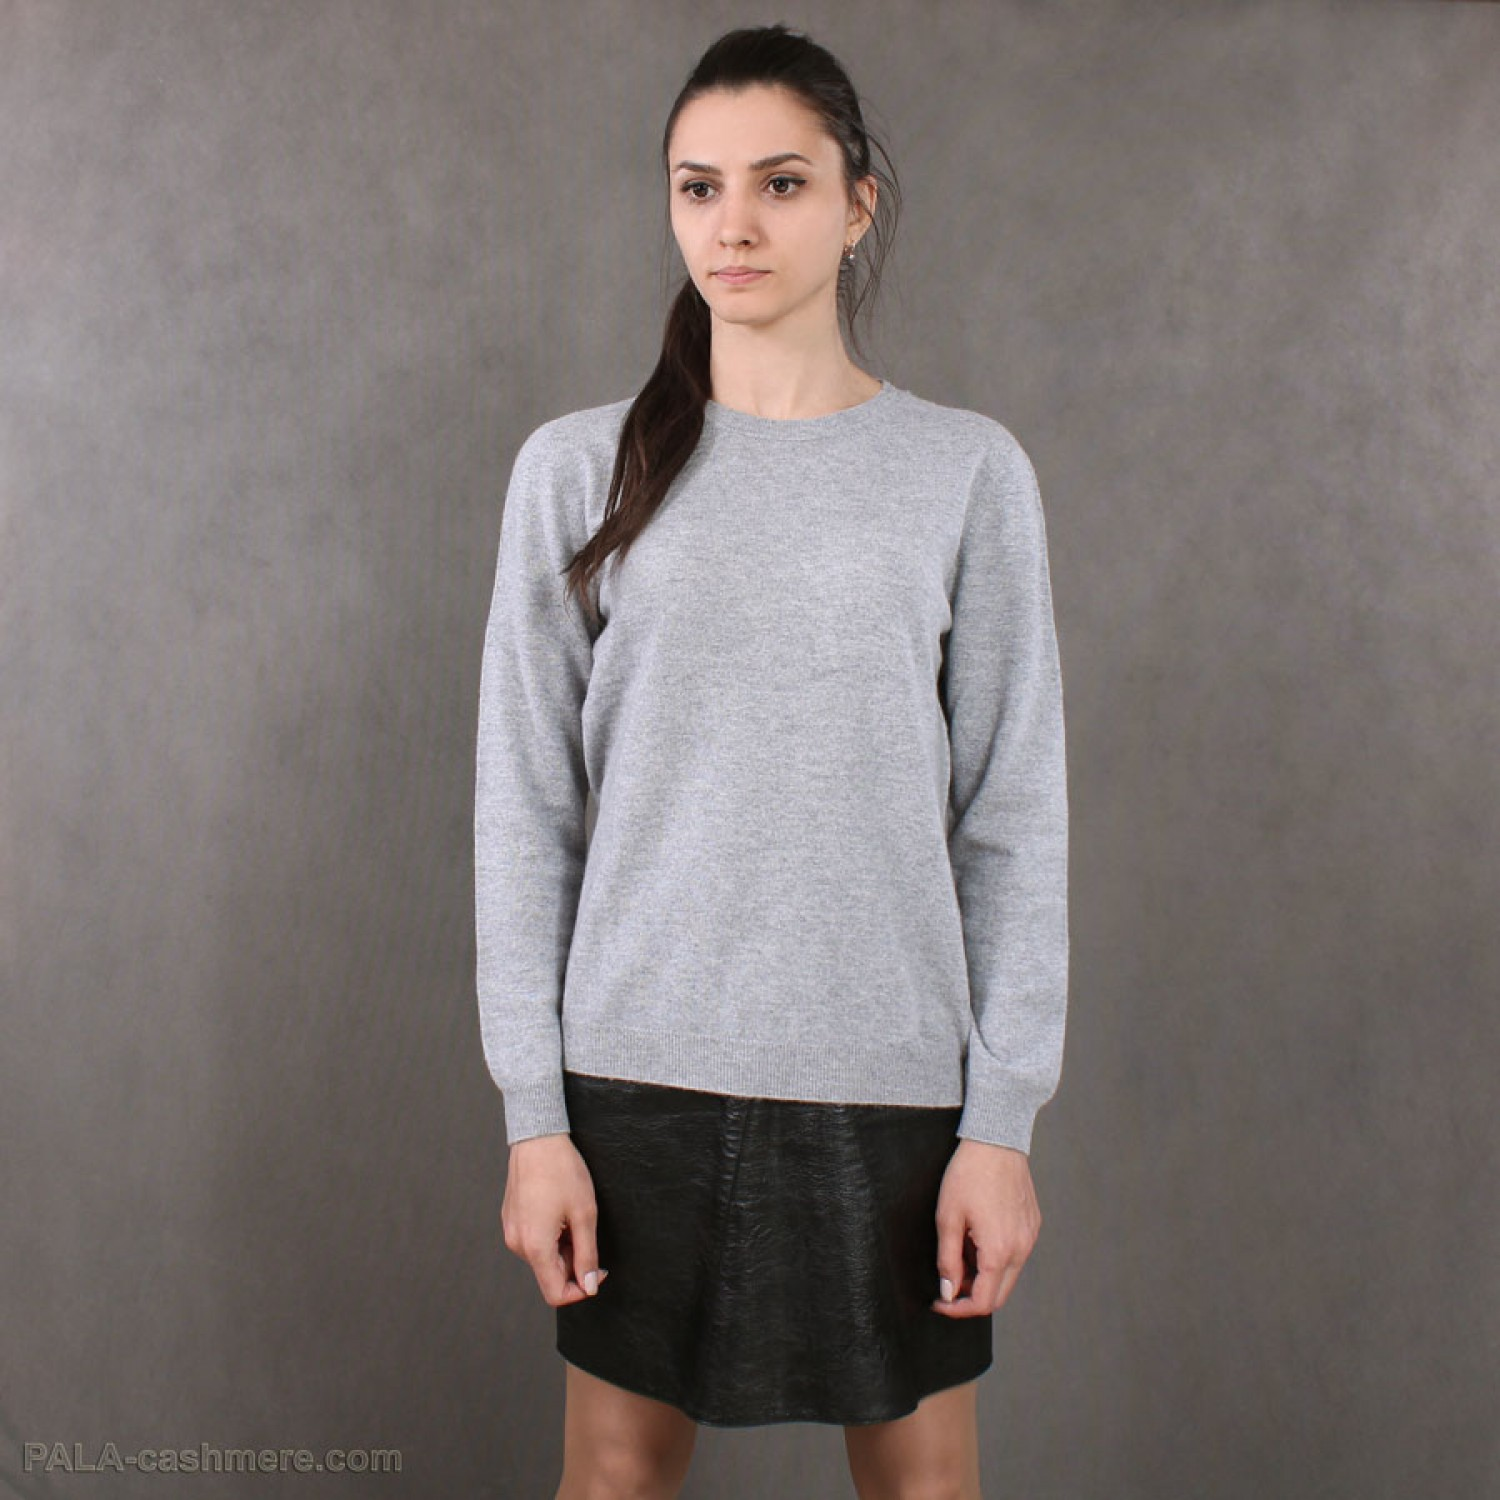 Blue cashmere sweater for women